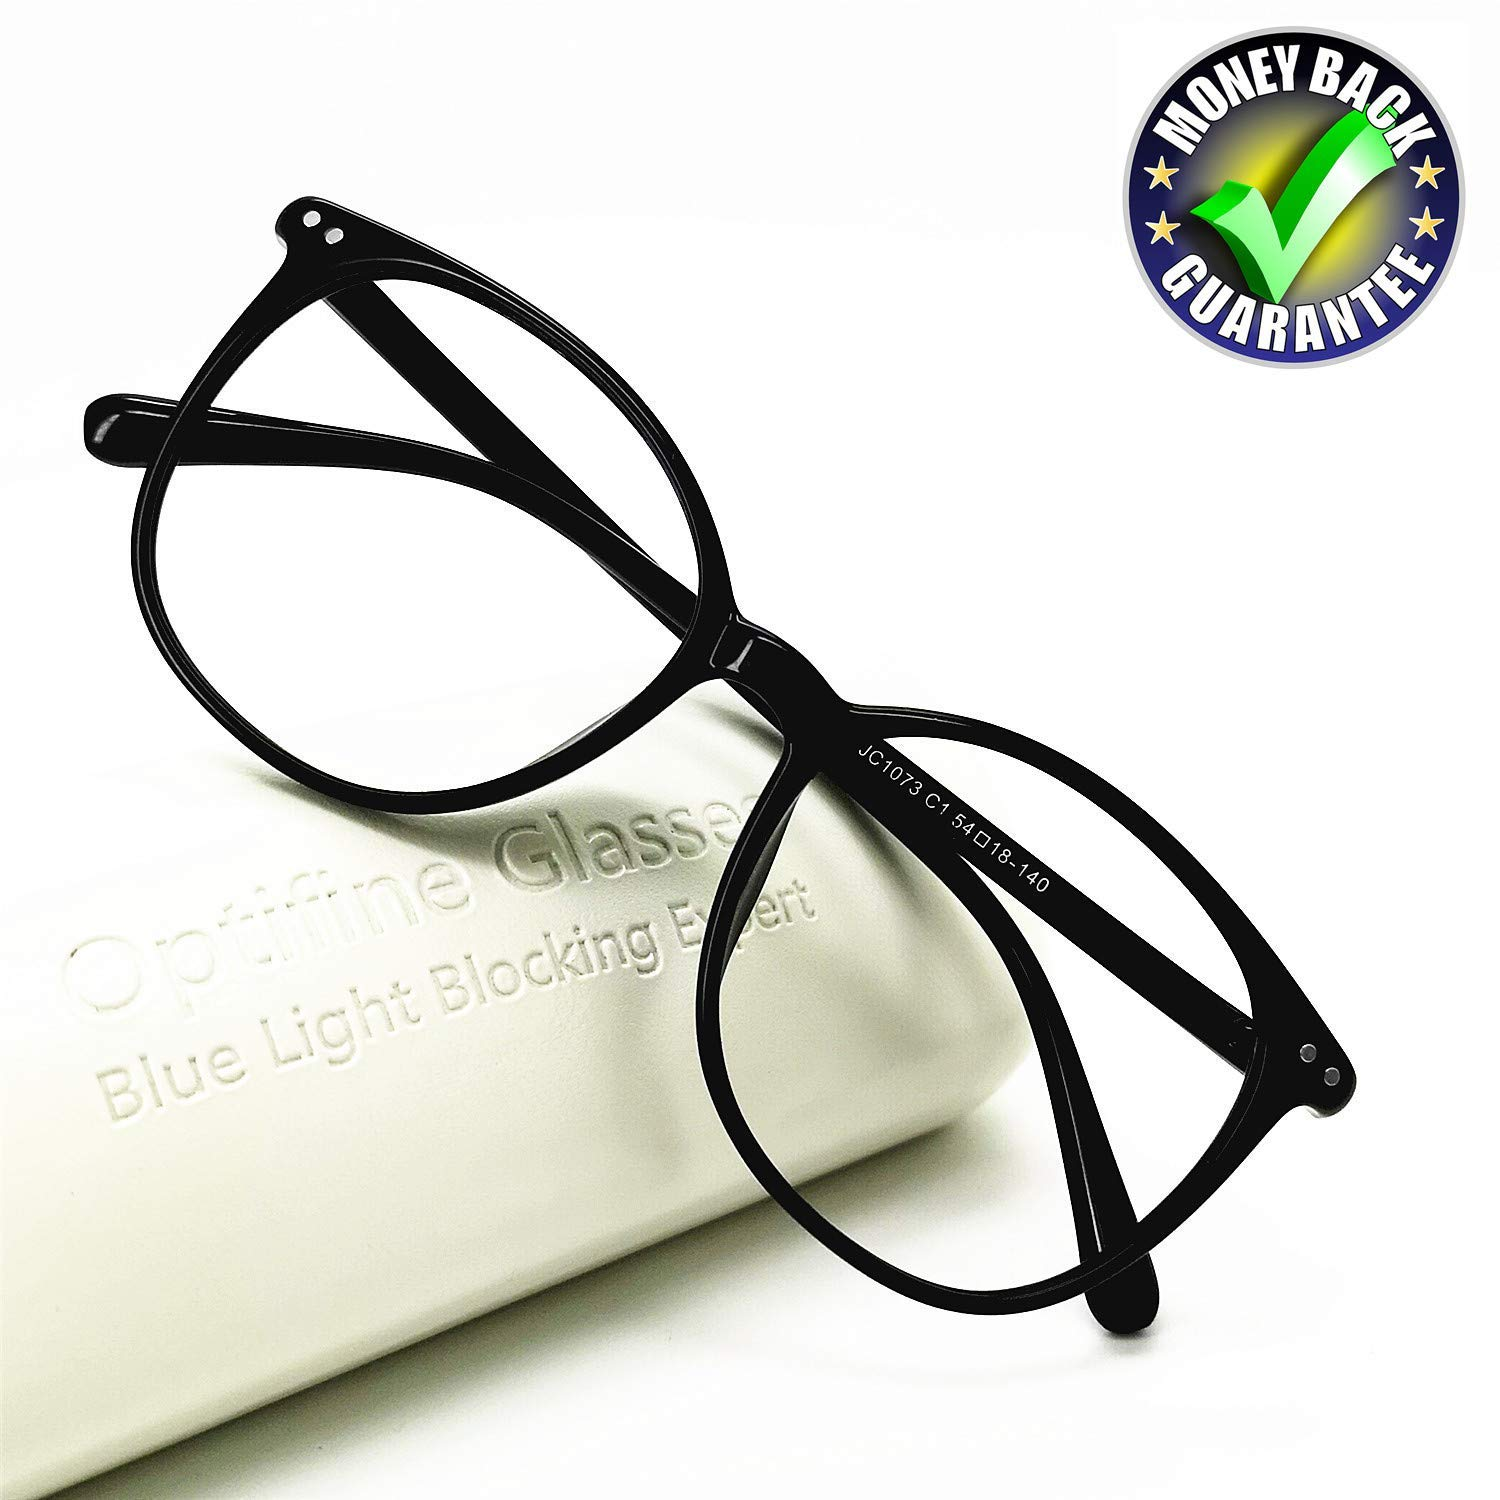 811f663719 Get Quotations · Reading Glasses Anti Blue Light Blocking Reader Women Men  for Mid Big Face